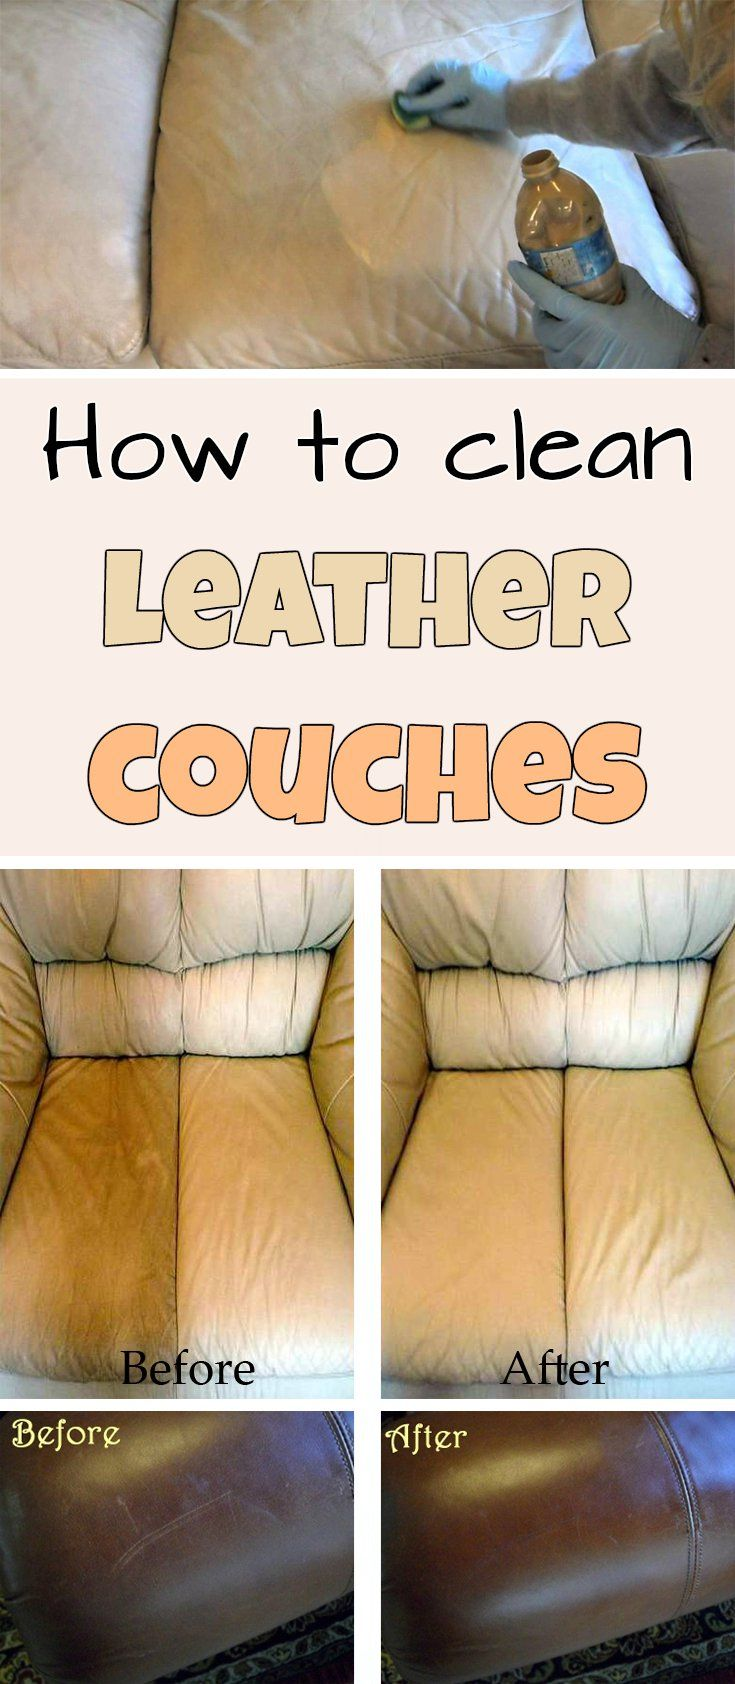 Can You Clean White Leather Sofas Sofa Cleaning In Delhi How To Couches Mycleaningsolutions Com Recipes